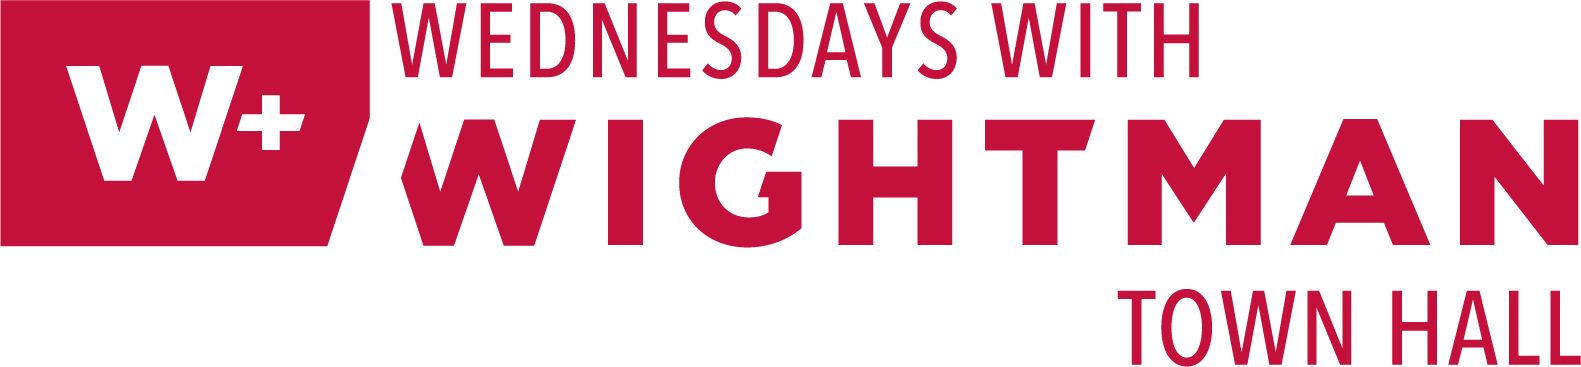 Invite for Wednesdays with Wightman